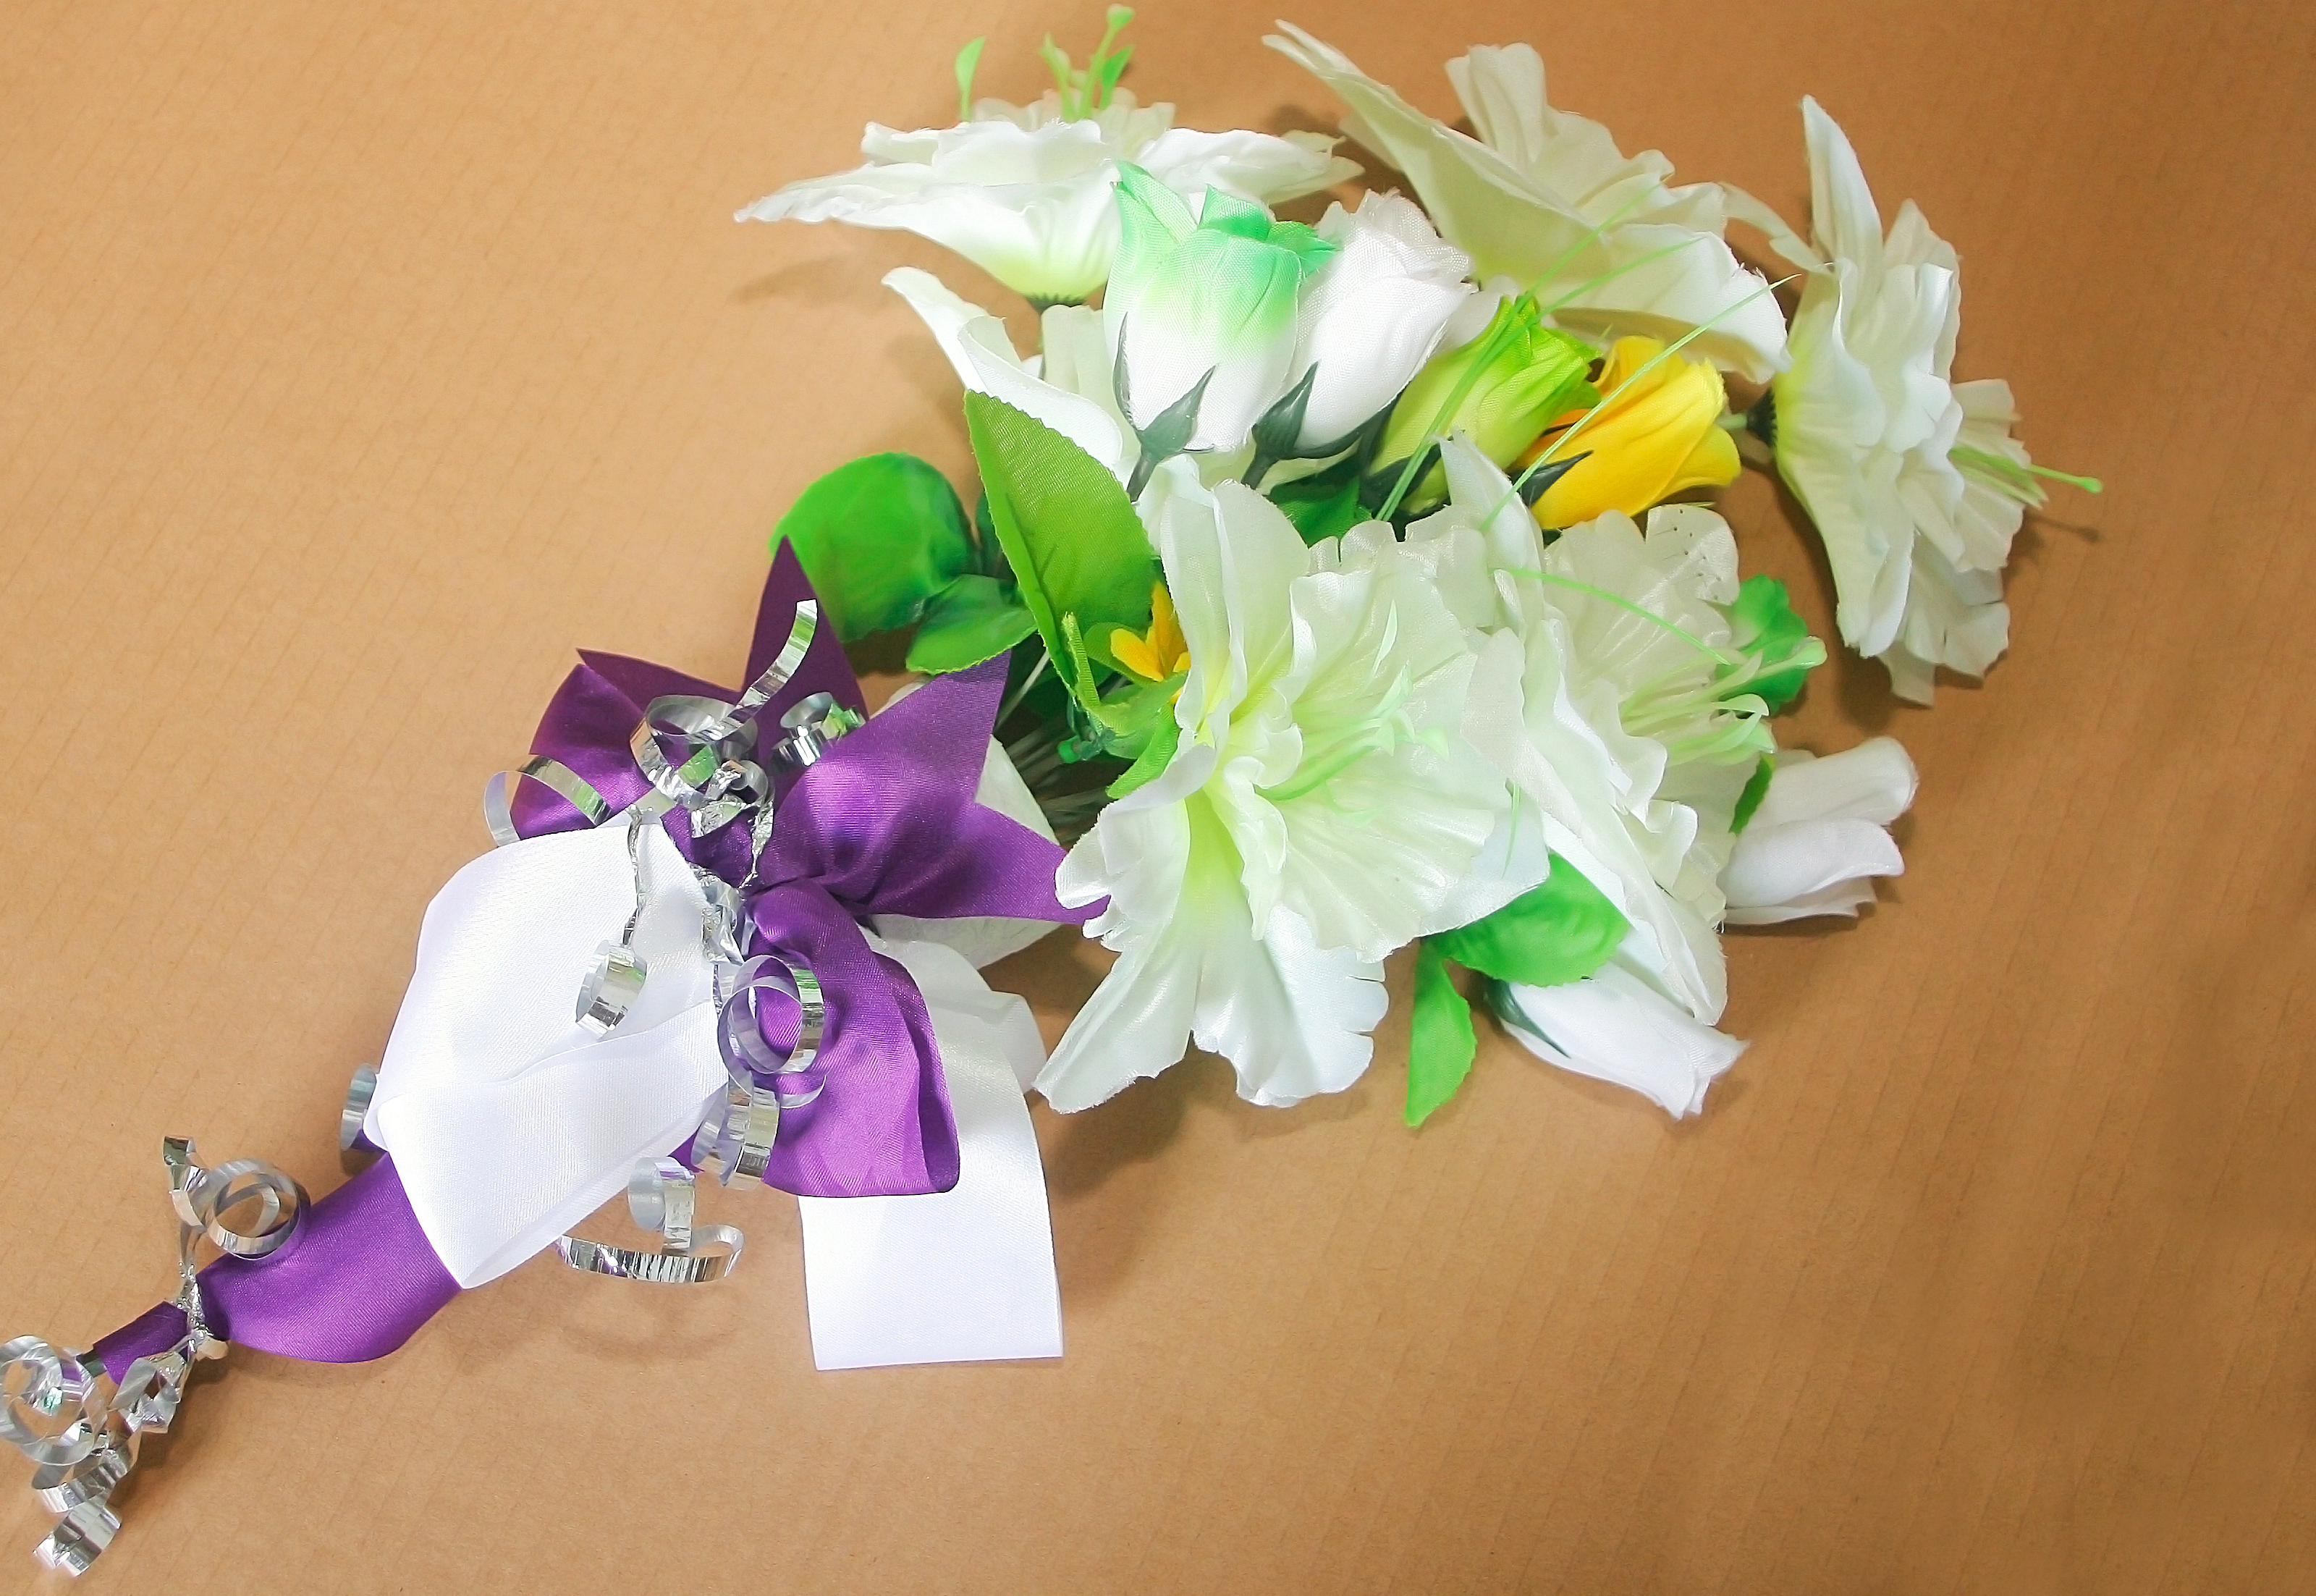 How To Make A Bridal Bouquet With Artificial Flowers: 8 Steps